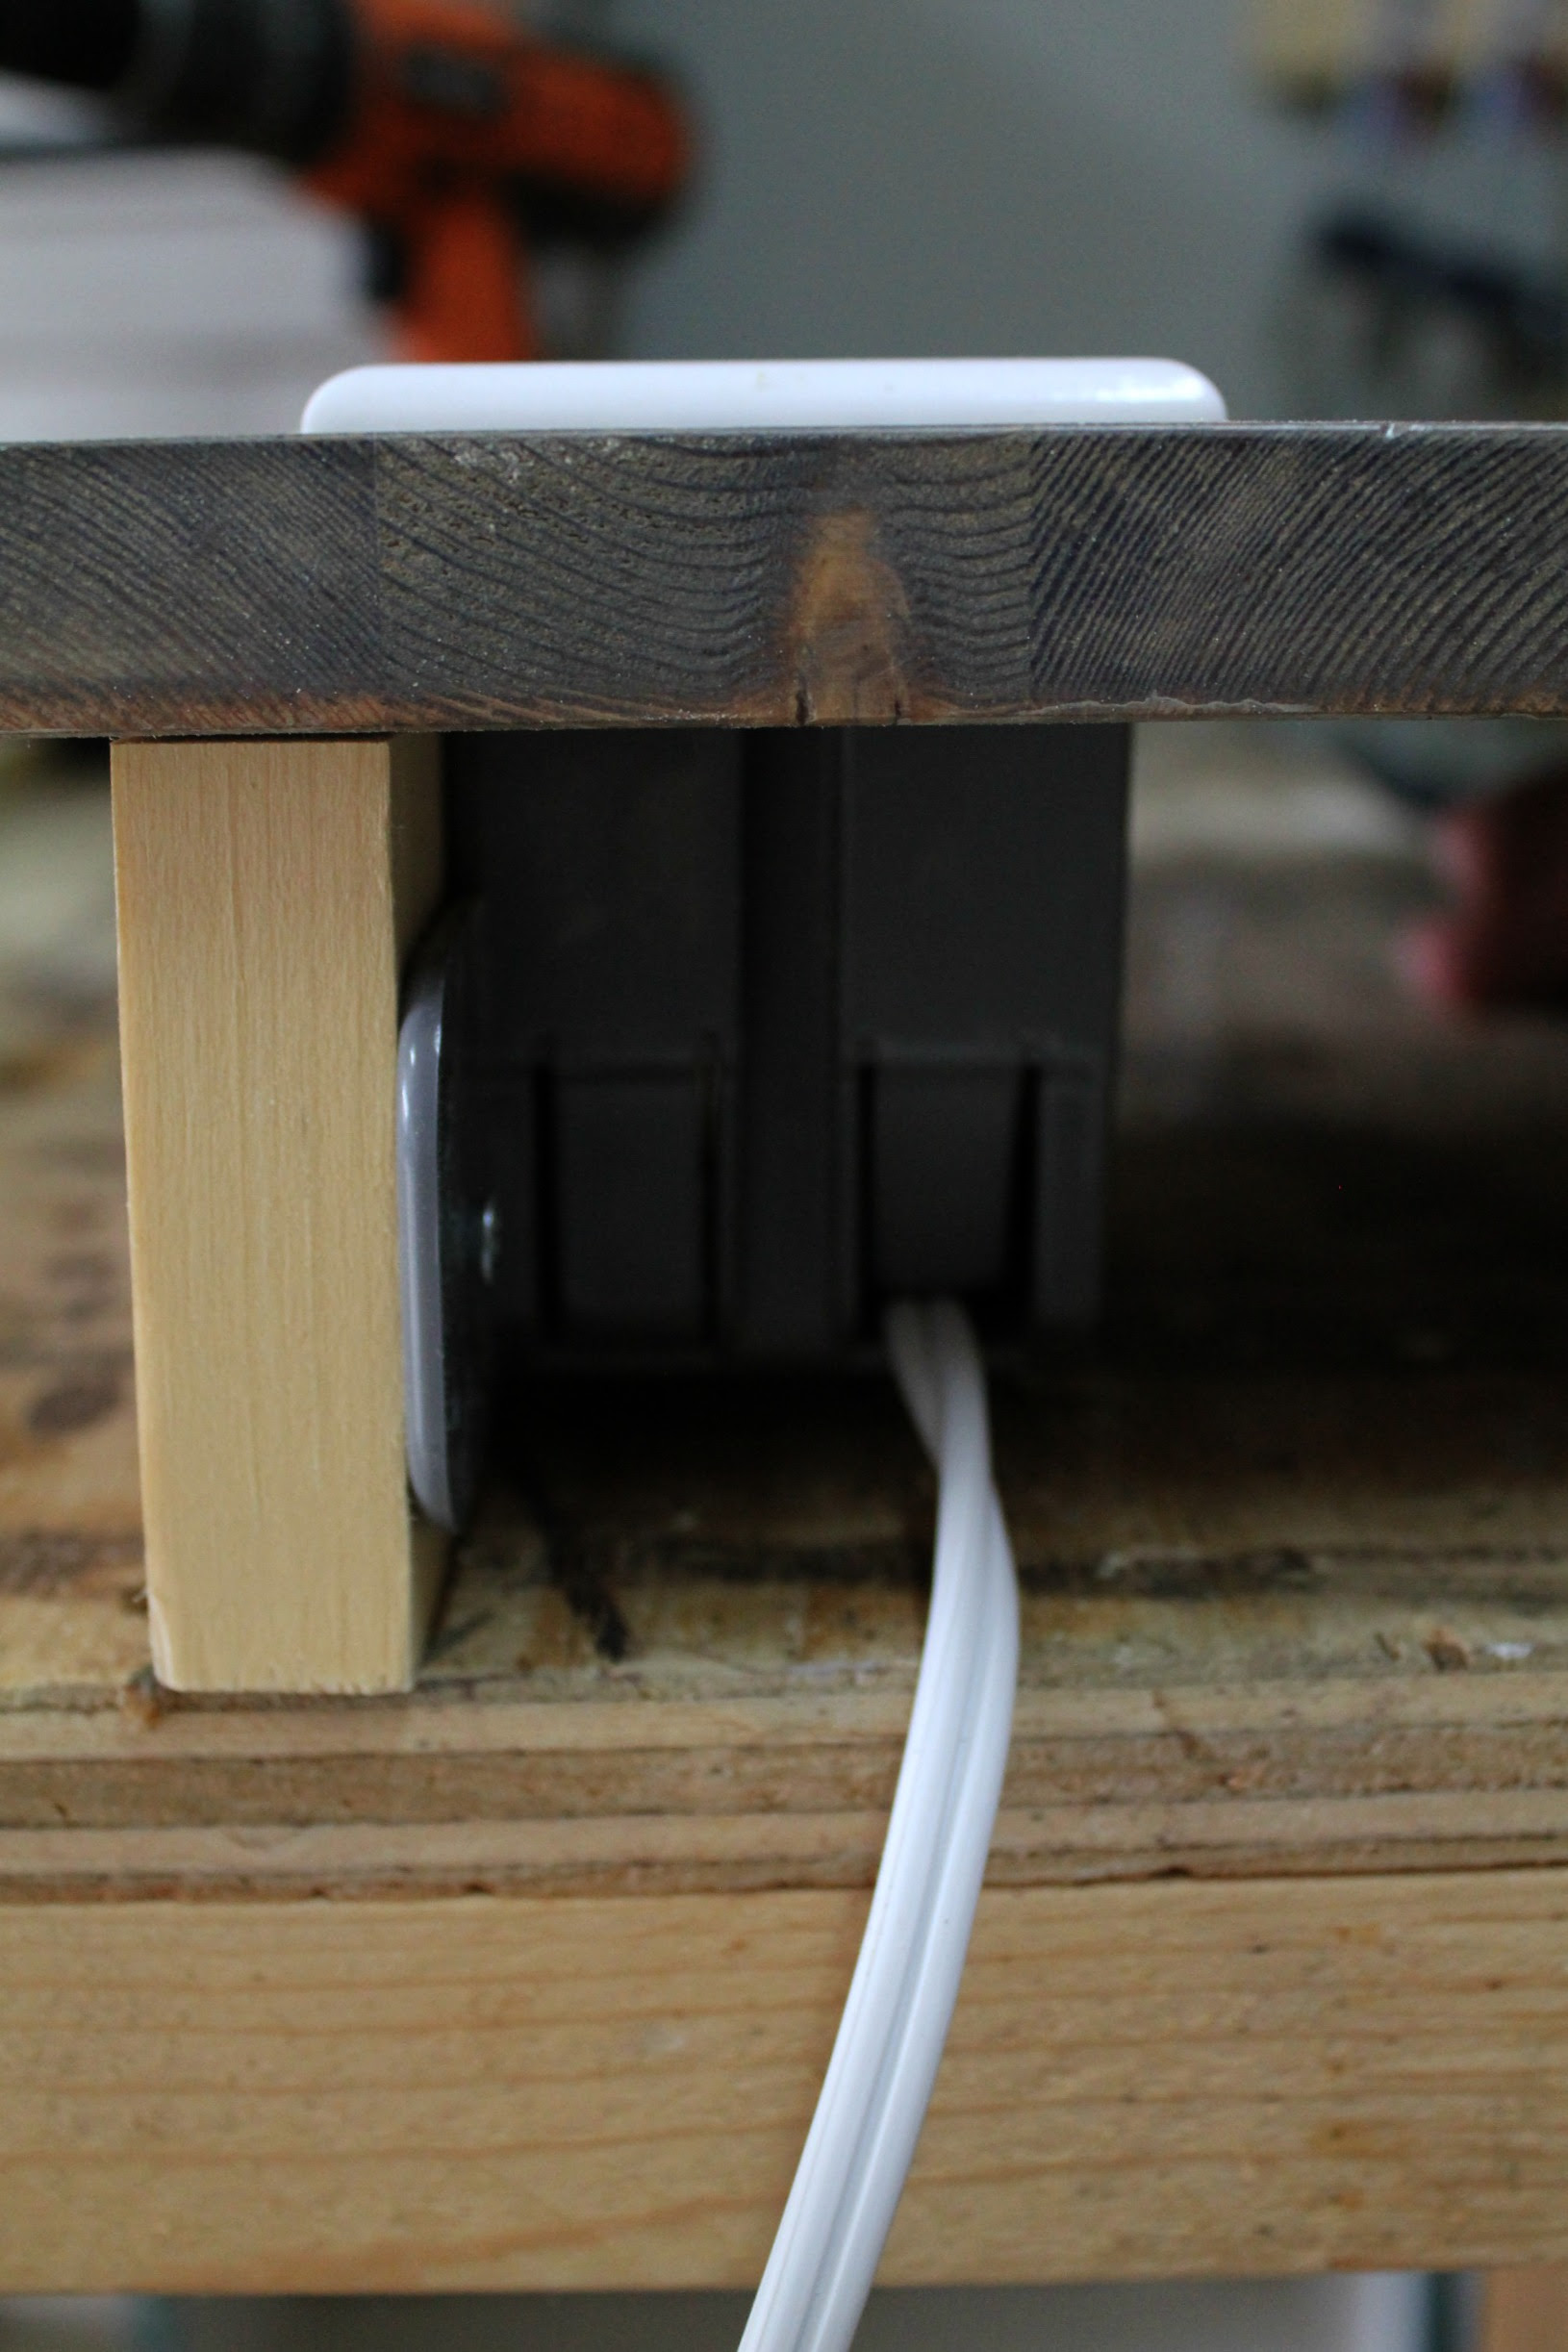 DIY built-in extension outlet